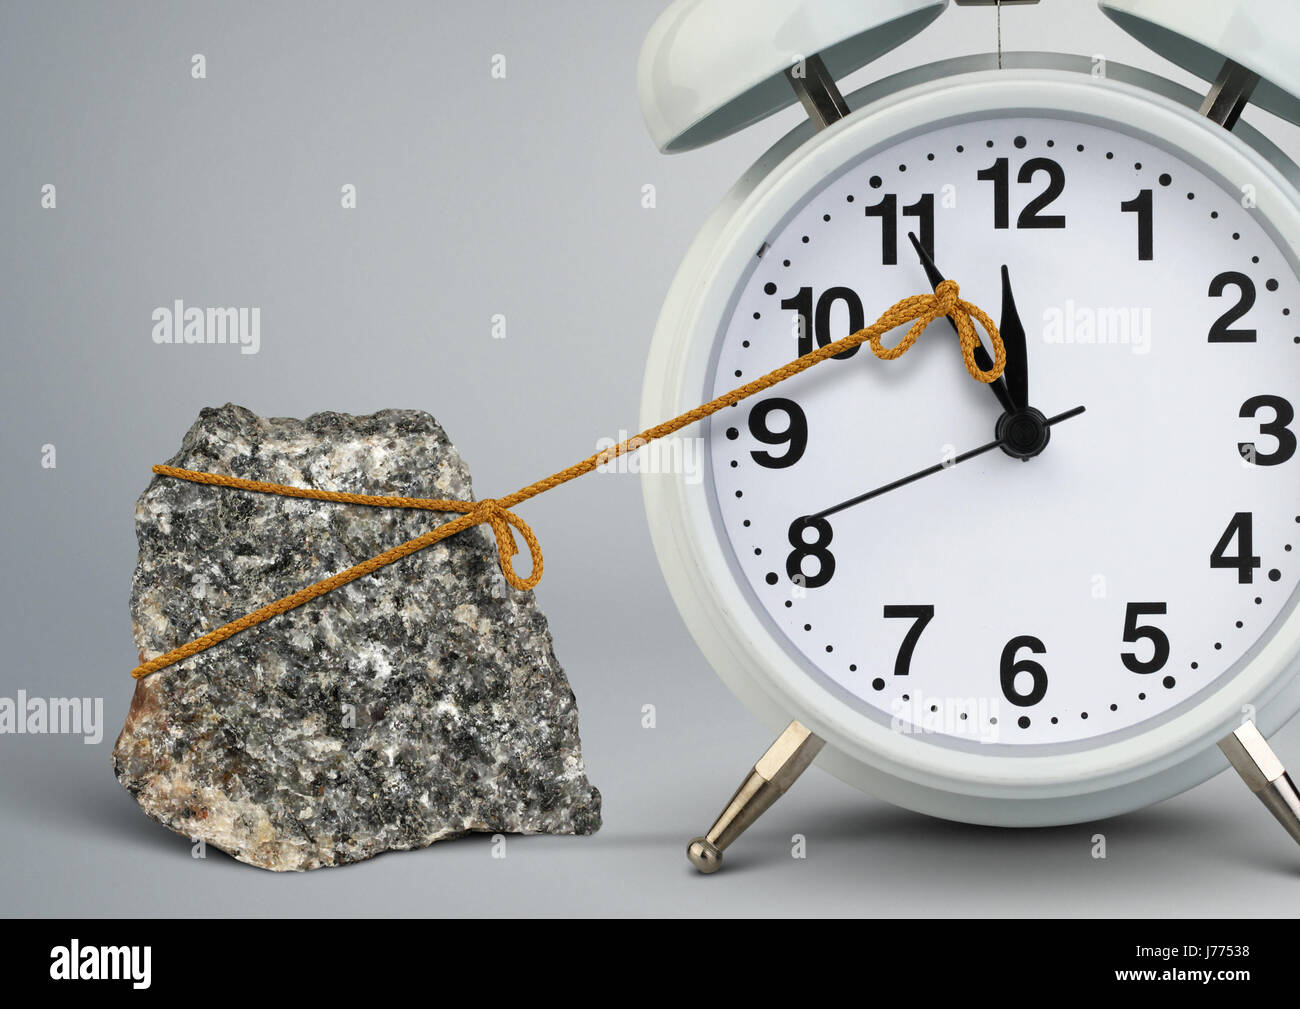 Time on clock stop by stone, delay concept - Stock Image